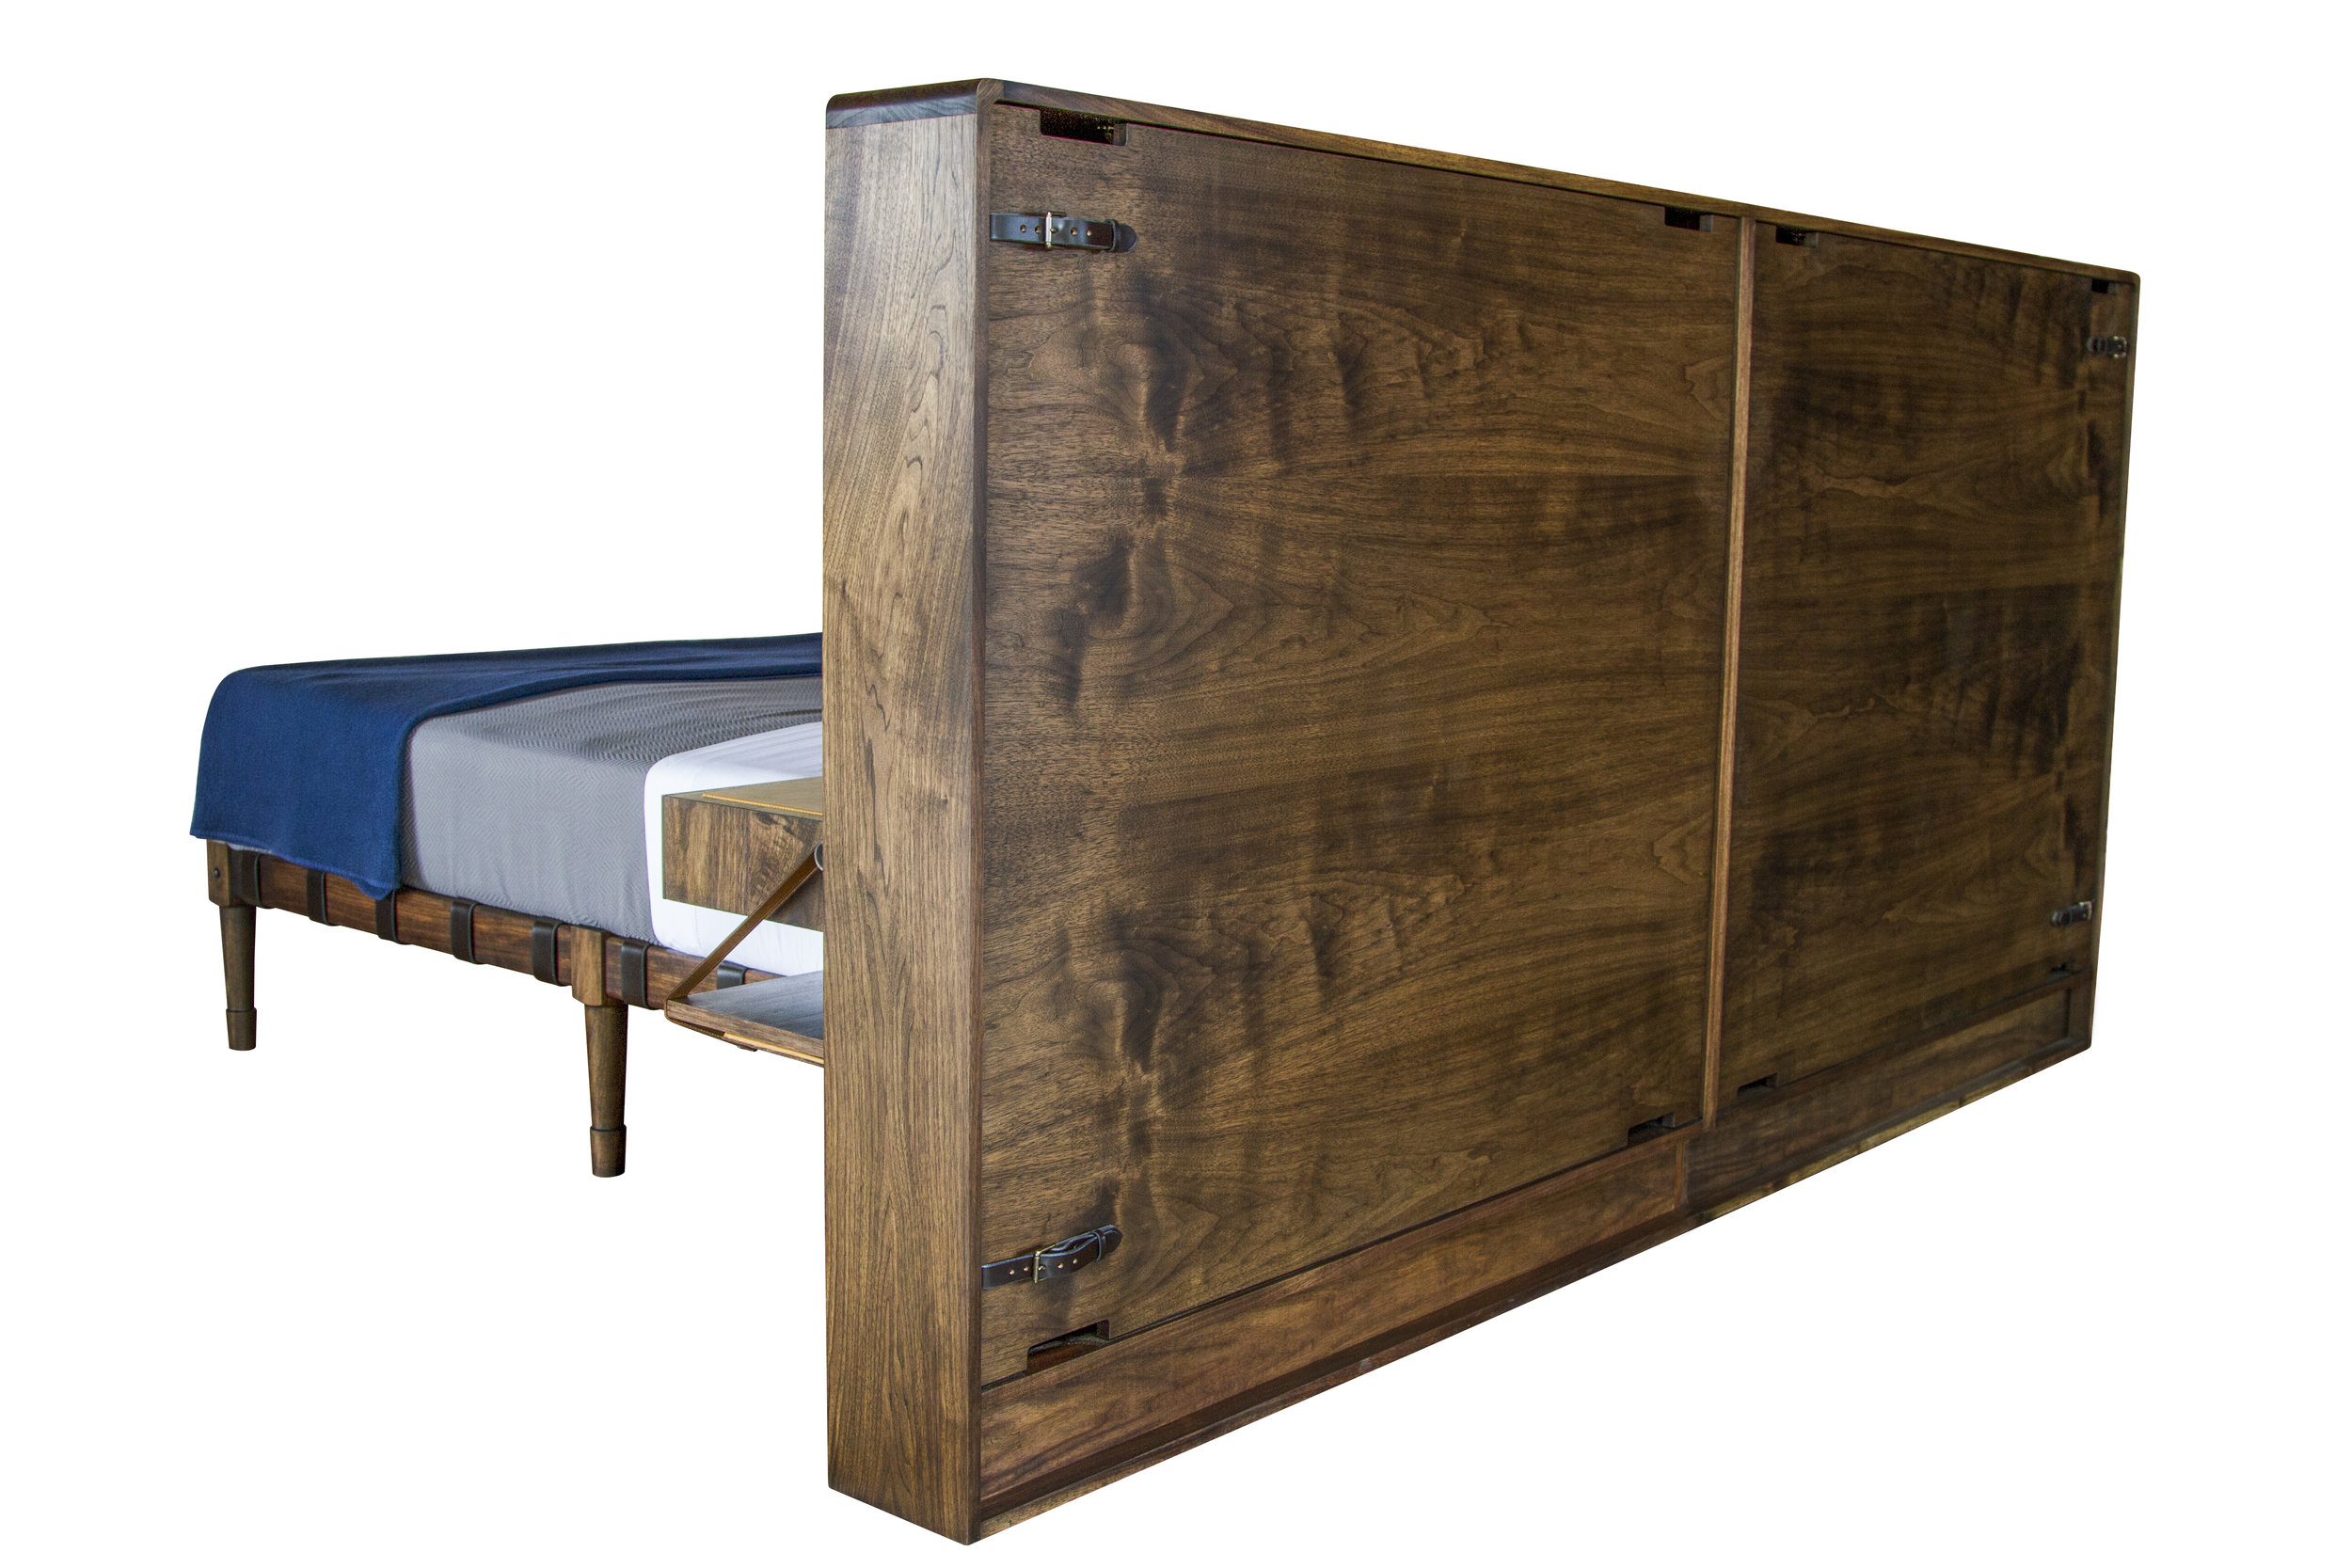 Custom free-standing Marlton Headboard with removable panels for electrical access.